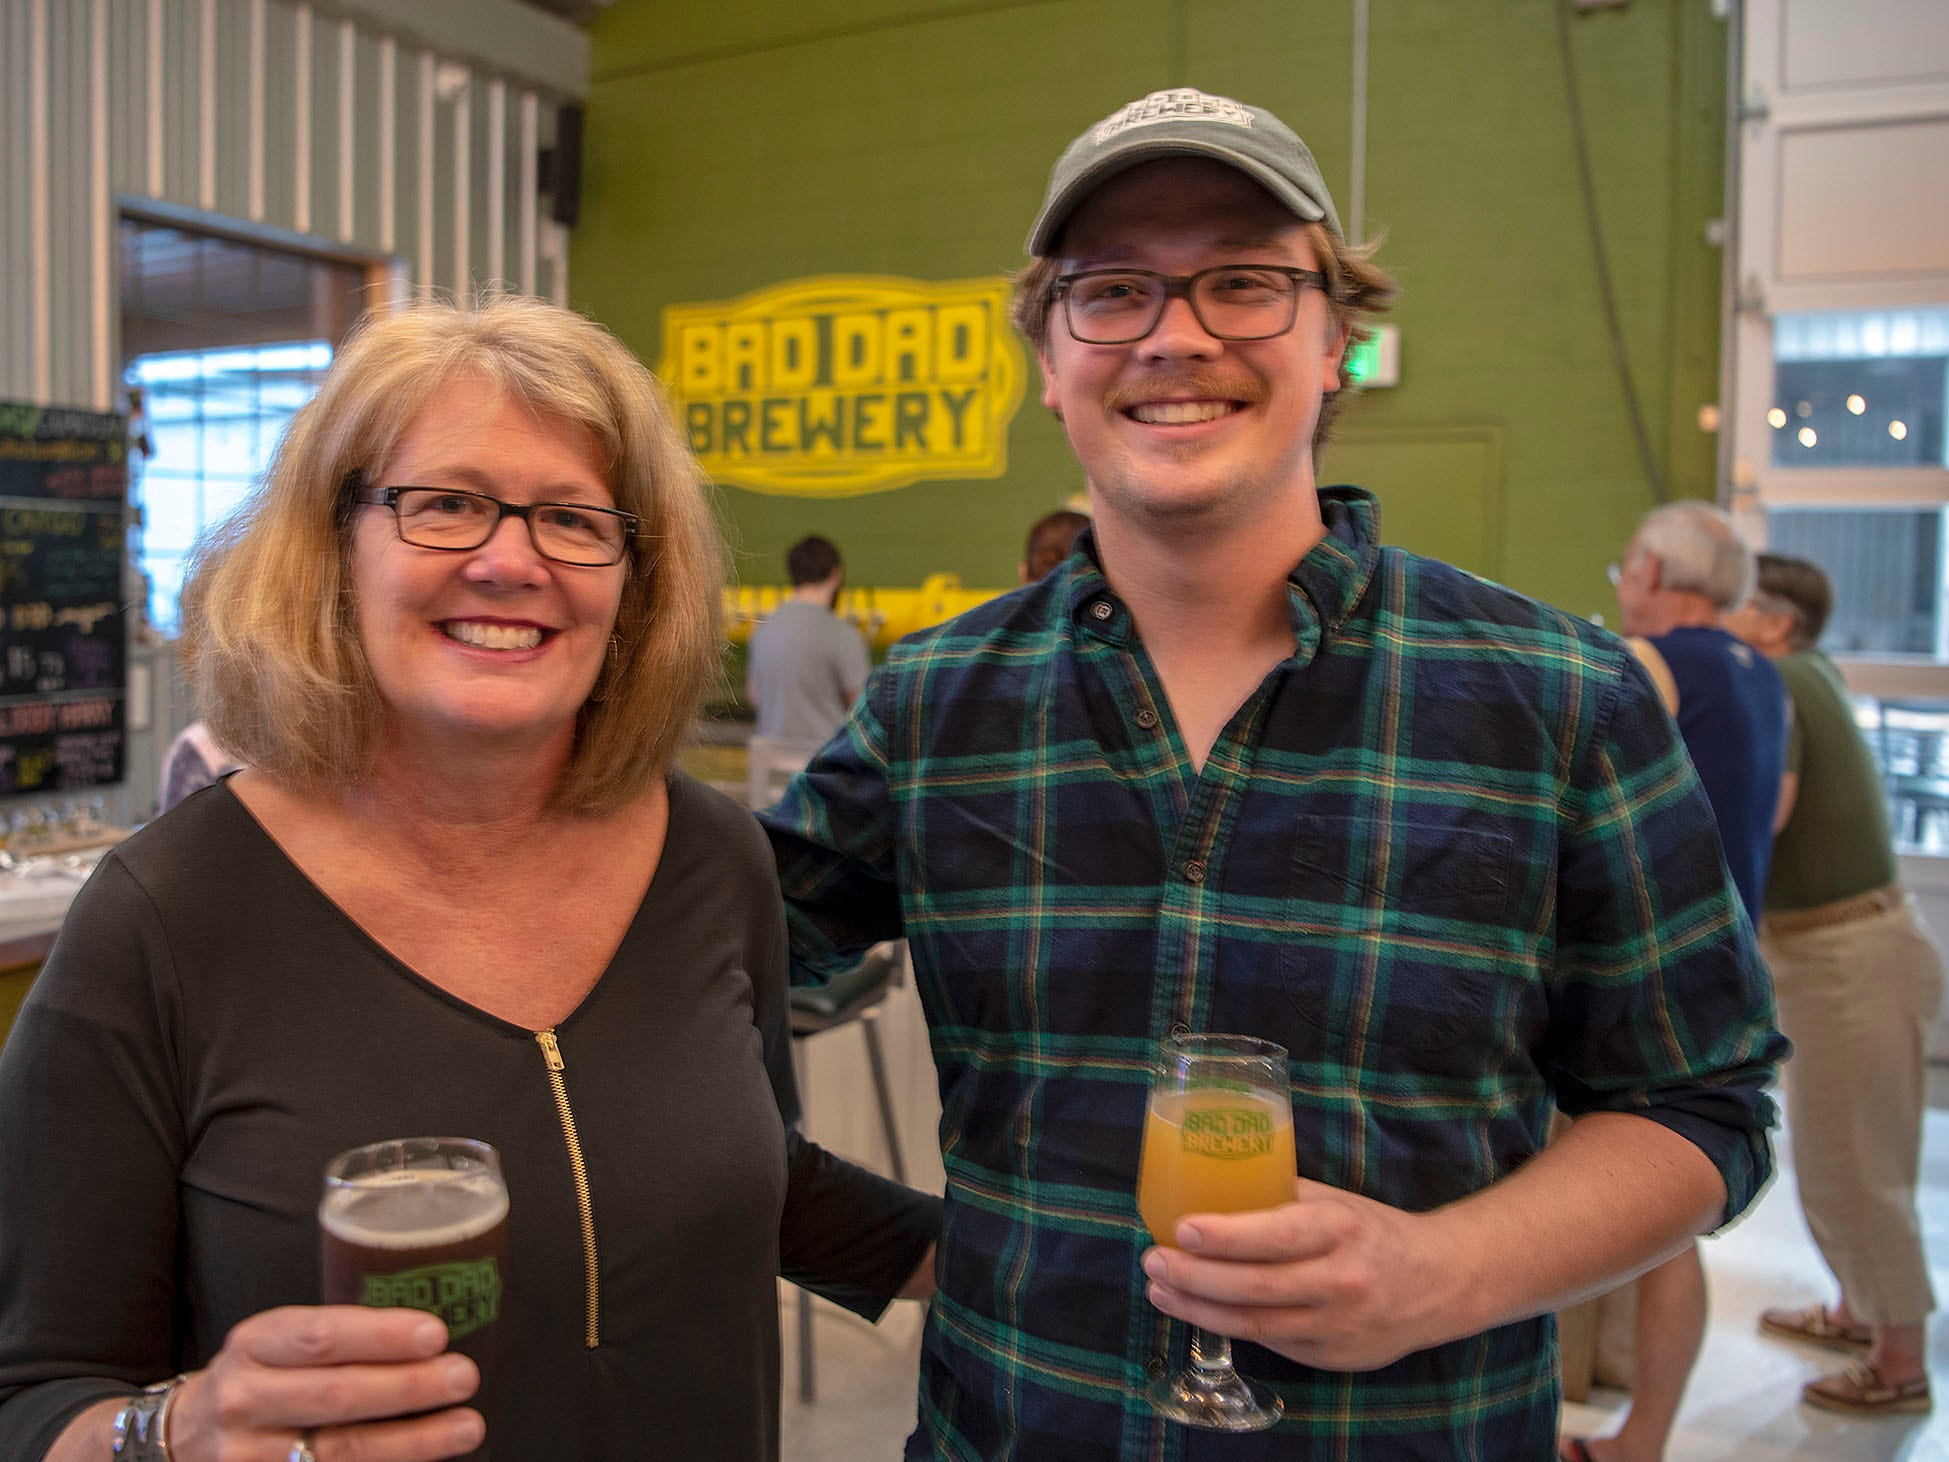 Grains & Grill co-owner Joanie Howard and son, brewer Patrick Howard, stand in the tasting room of Bad Dad Brewery, located inside the restaurant. The brewery has a dozen taps featuring beer made on site.